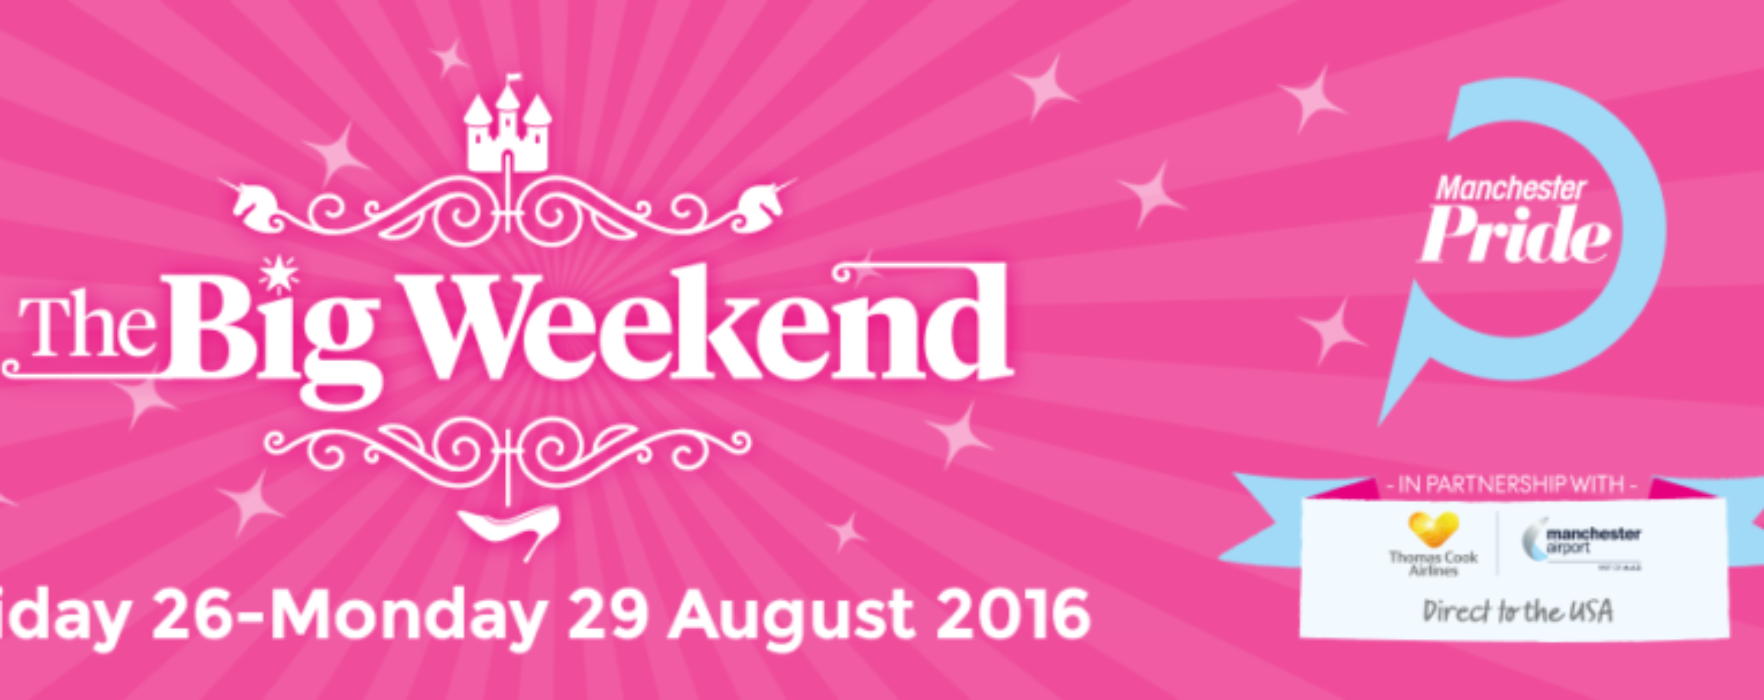 MANCHESTER PRIDE REVEALS FULL LINE-UP FOR THE BIG WEEKEND 2016